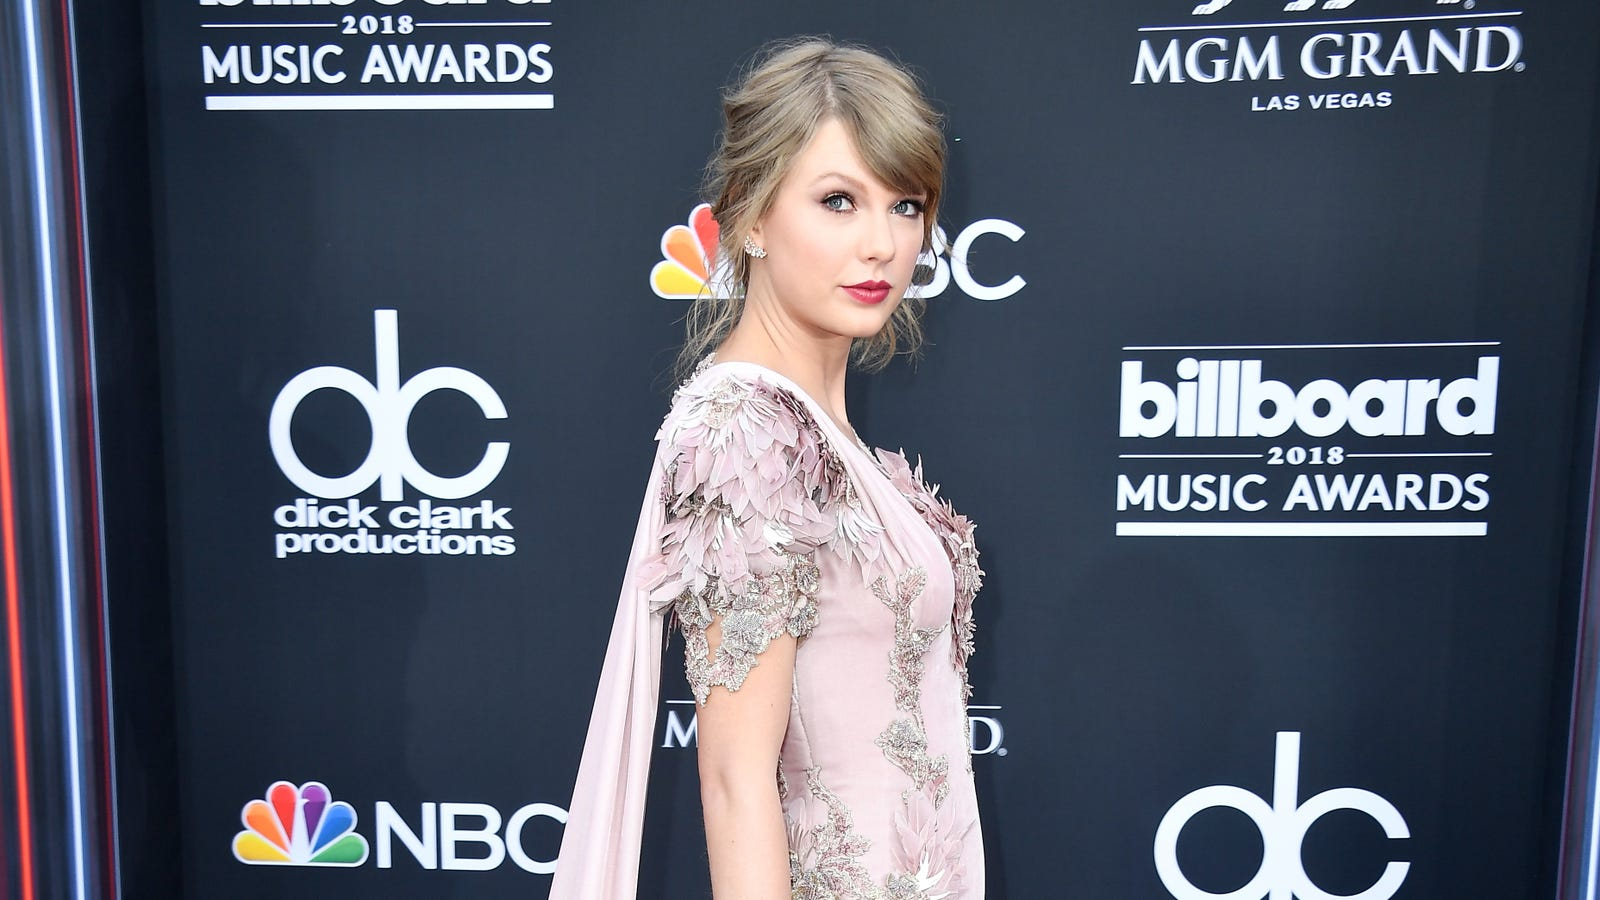 Over 65,000 People Registered to Vote After Taylor Swift Told Them To